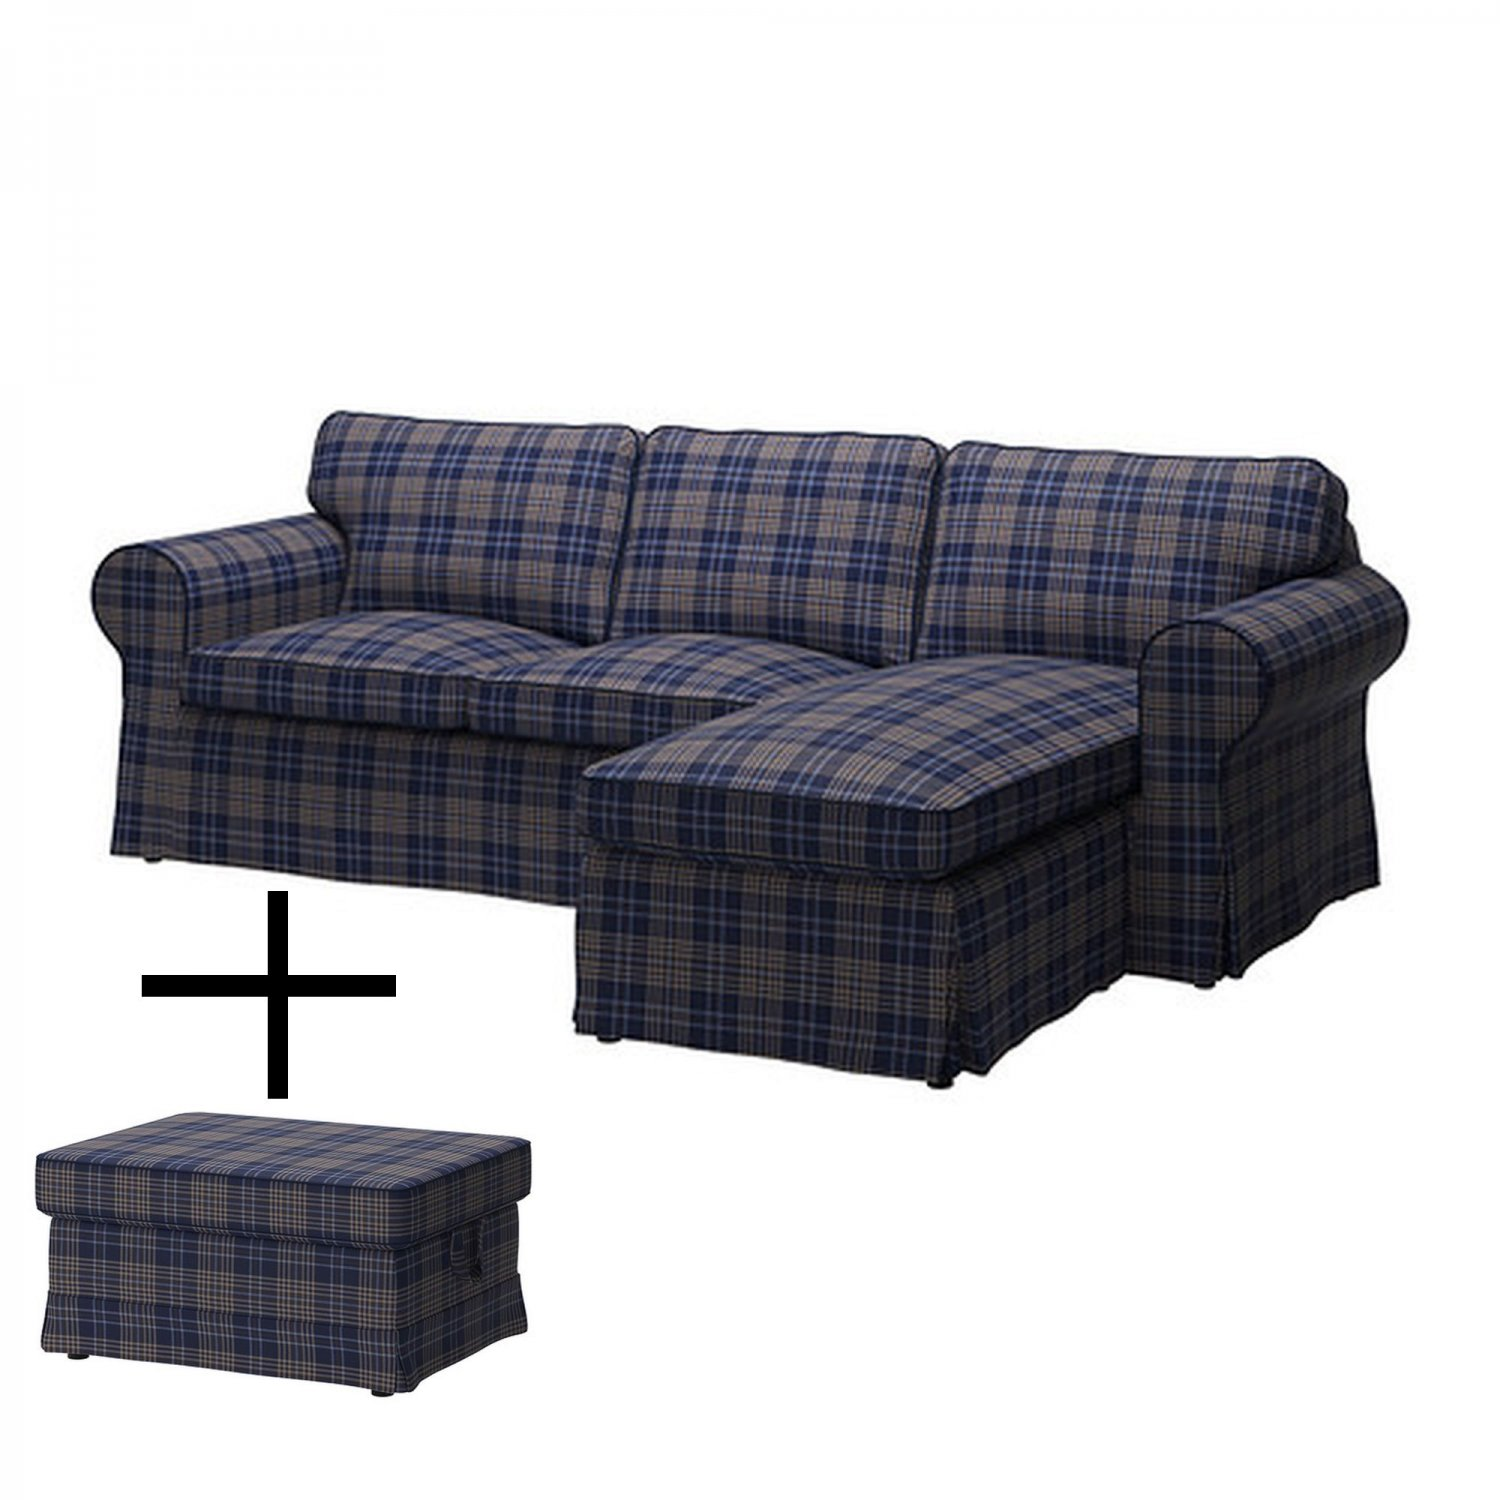 Ikea ektorp loveseat with chaise and footstool cover slipcover rutna multi plaid blue Blue loveseat slipcover